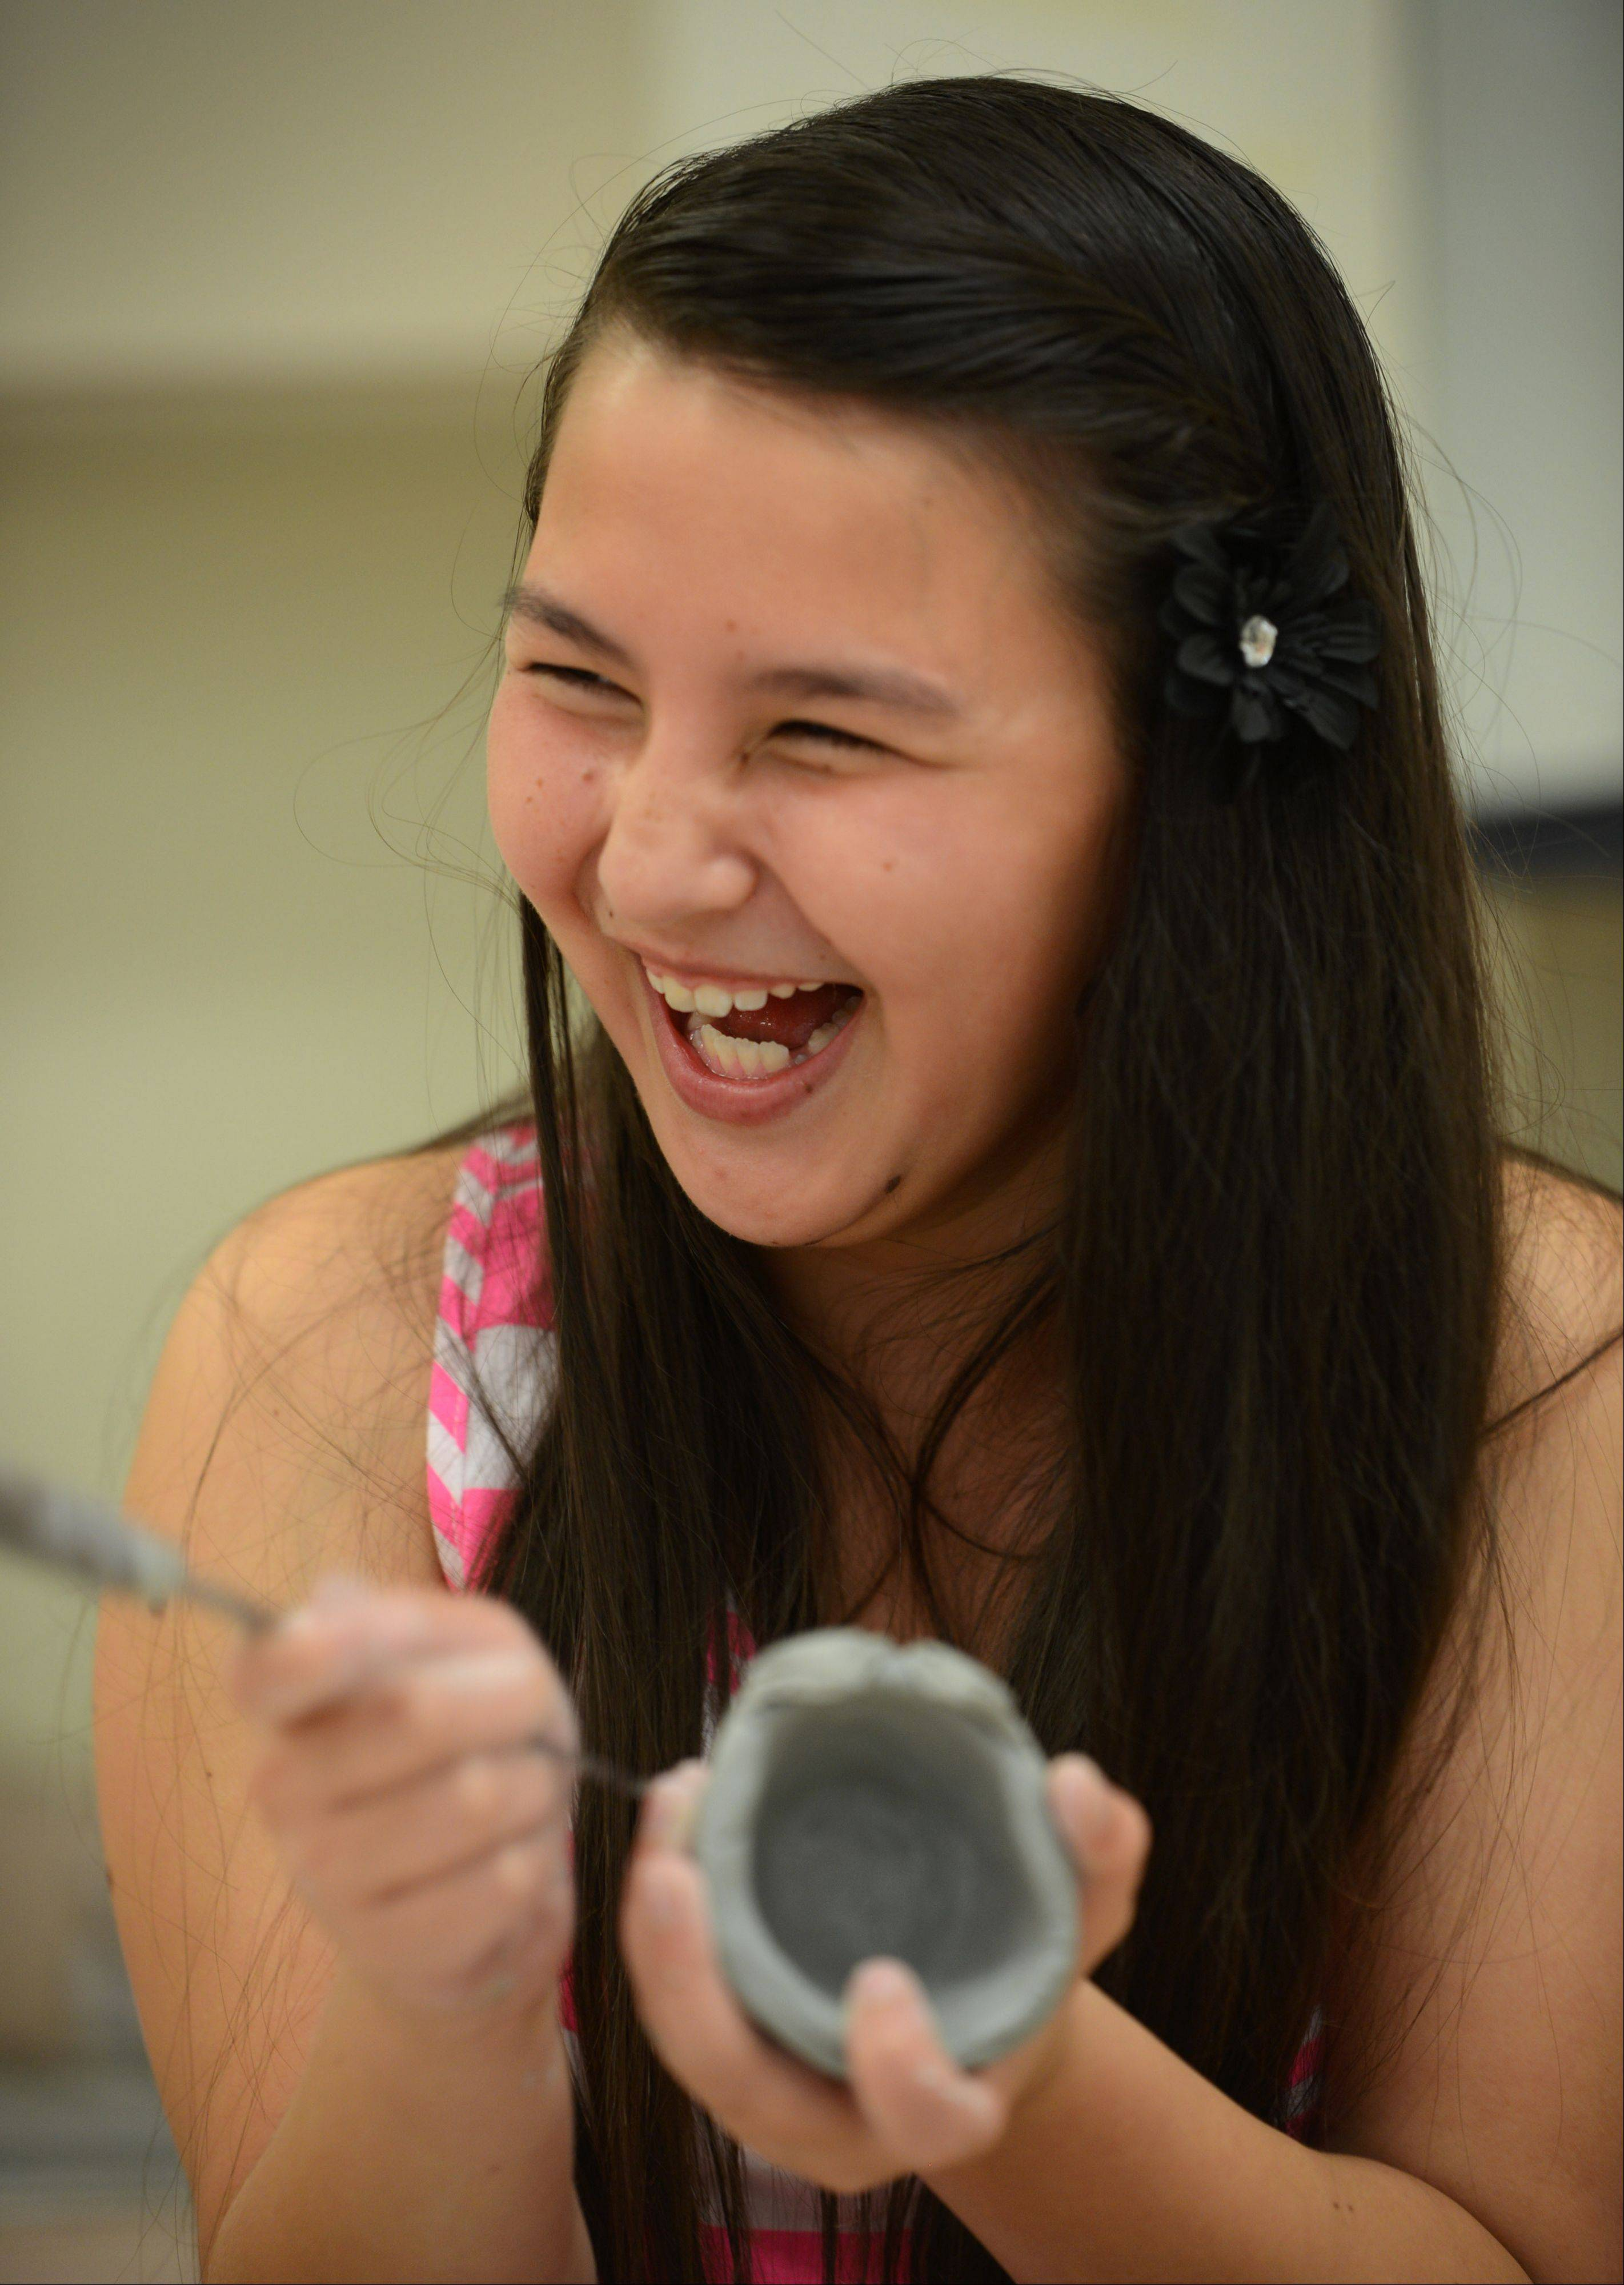 Libertyville School Dist. 70 students are participating in summer school classes at Highland Middle and Rockland Schools through July 11. On Monday, fifth-grade-student Amber Tse has fun with friends while working on a ceramics project.